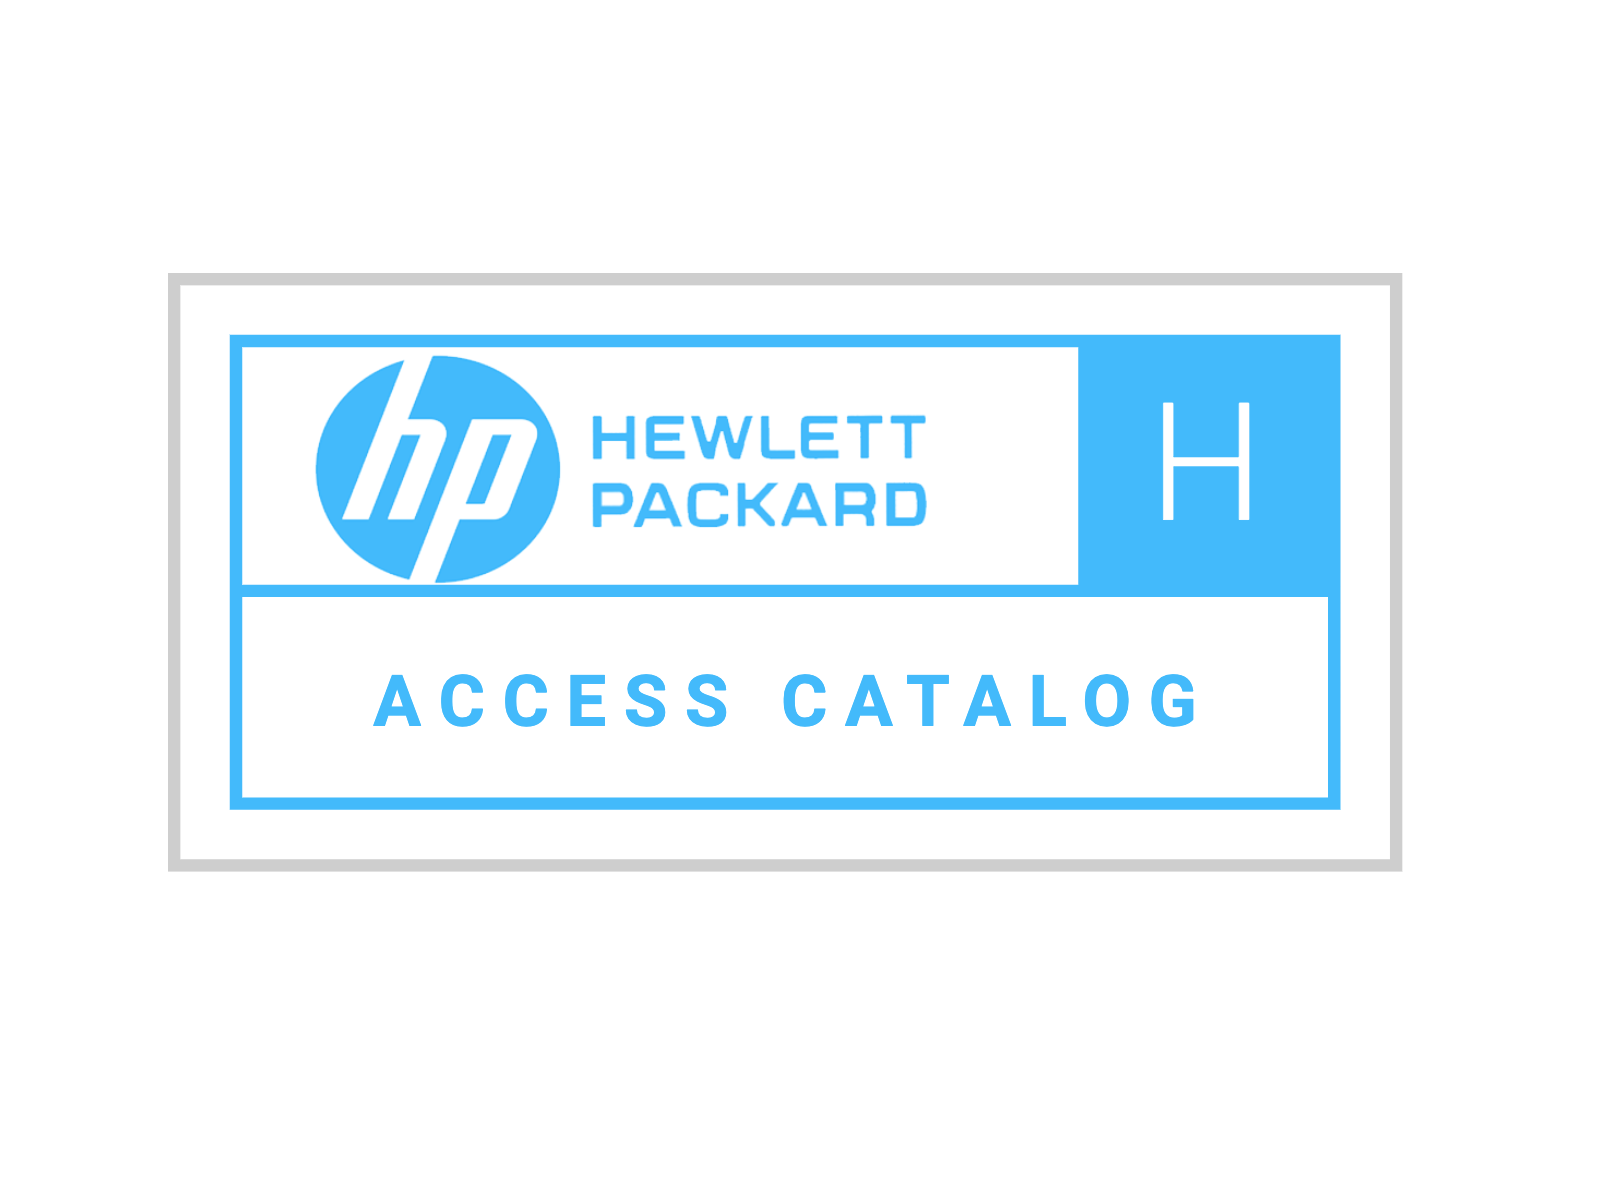 HP Access Catalog